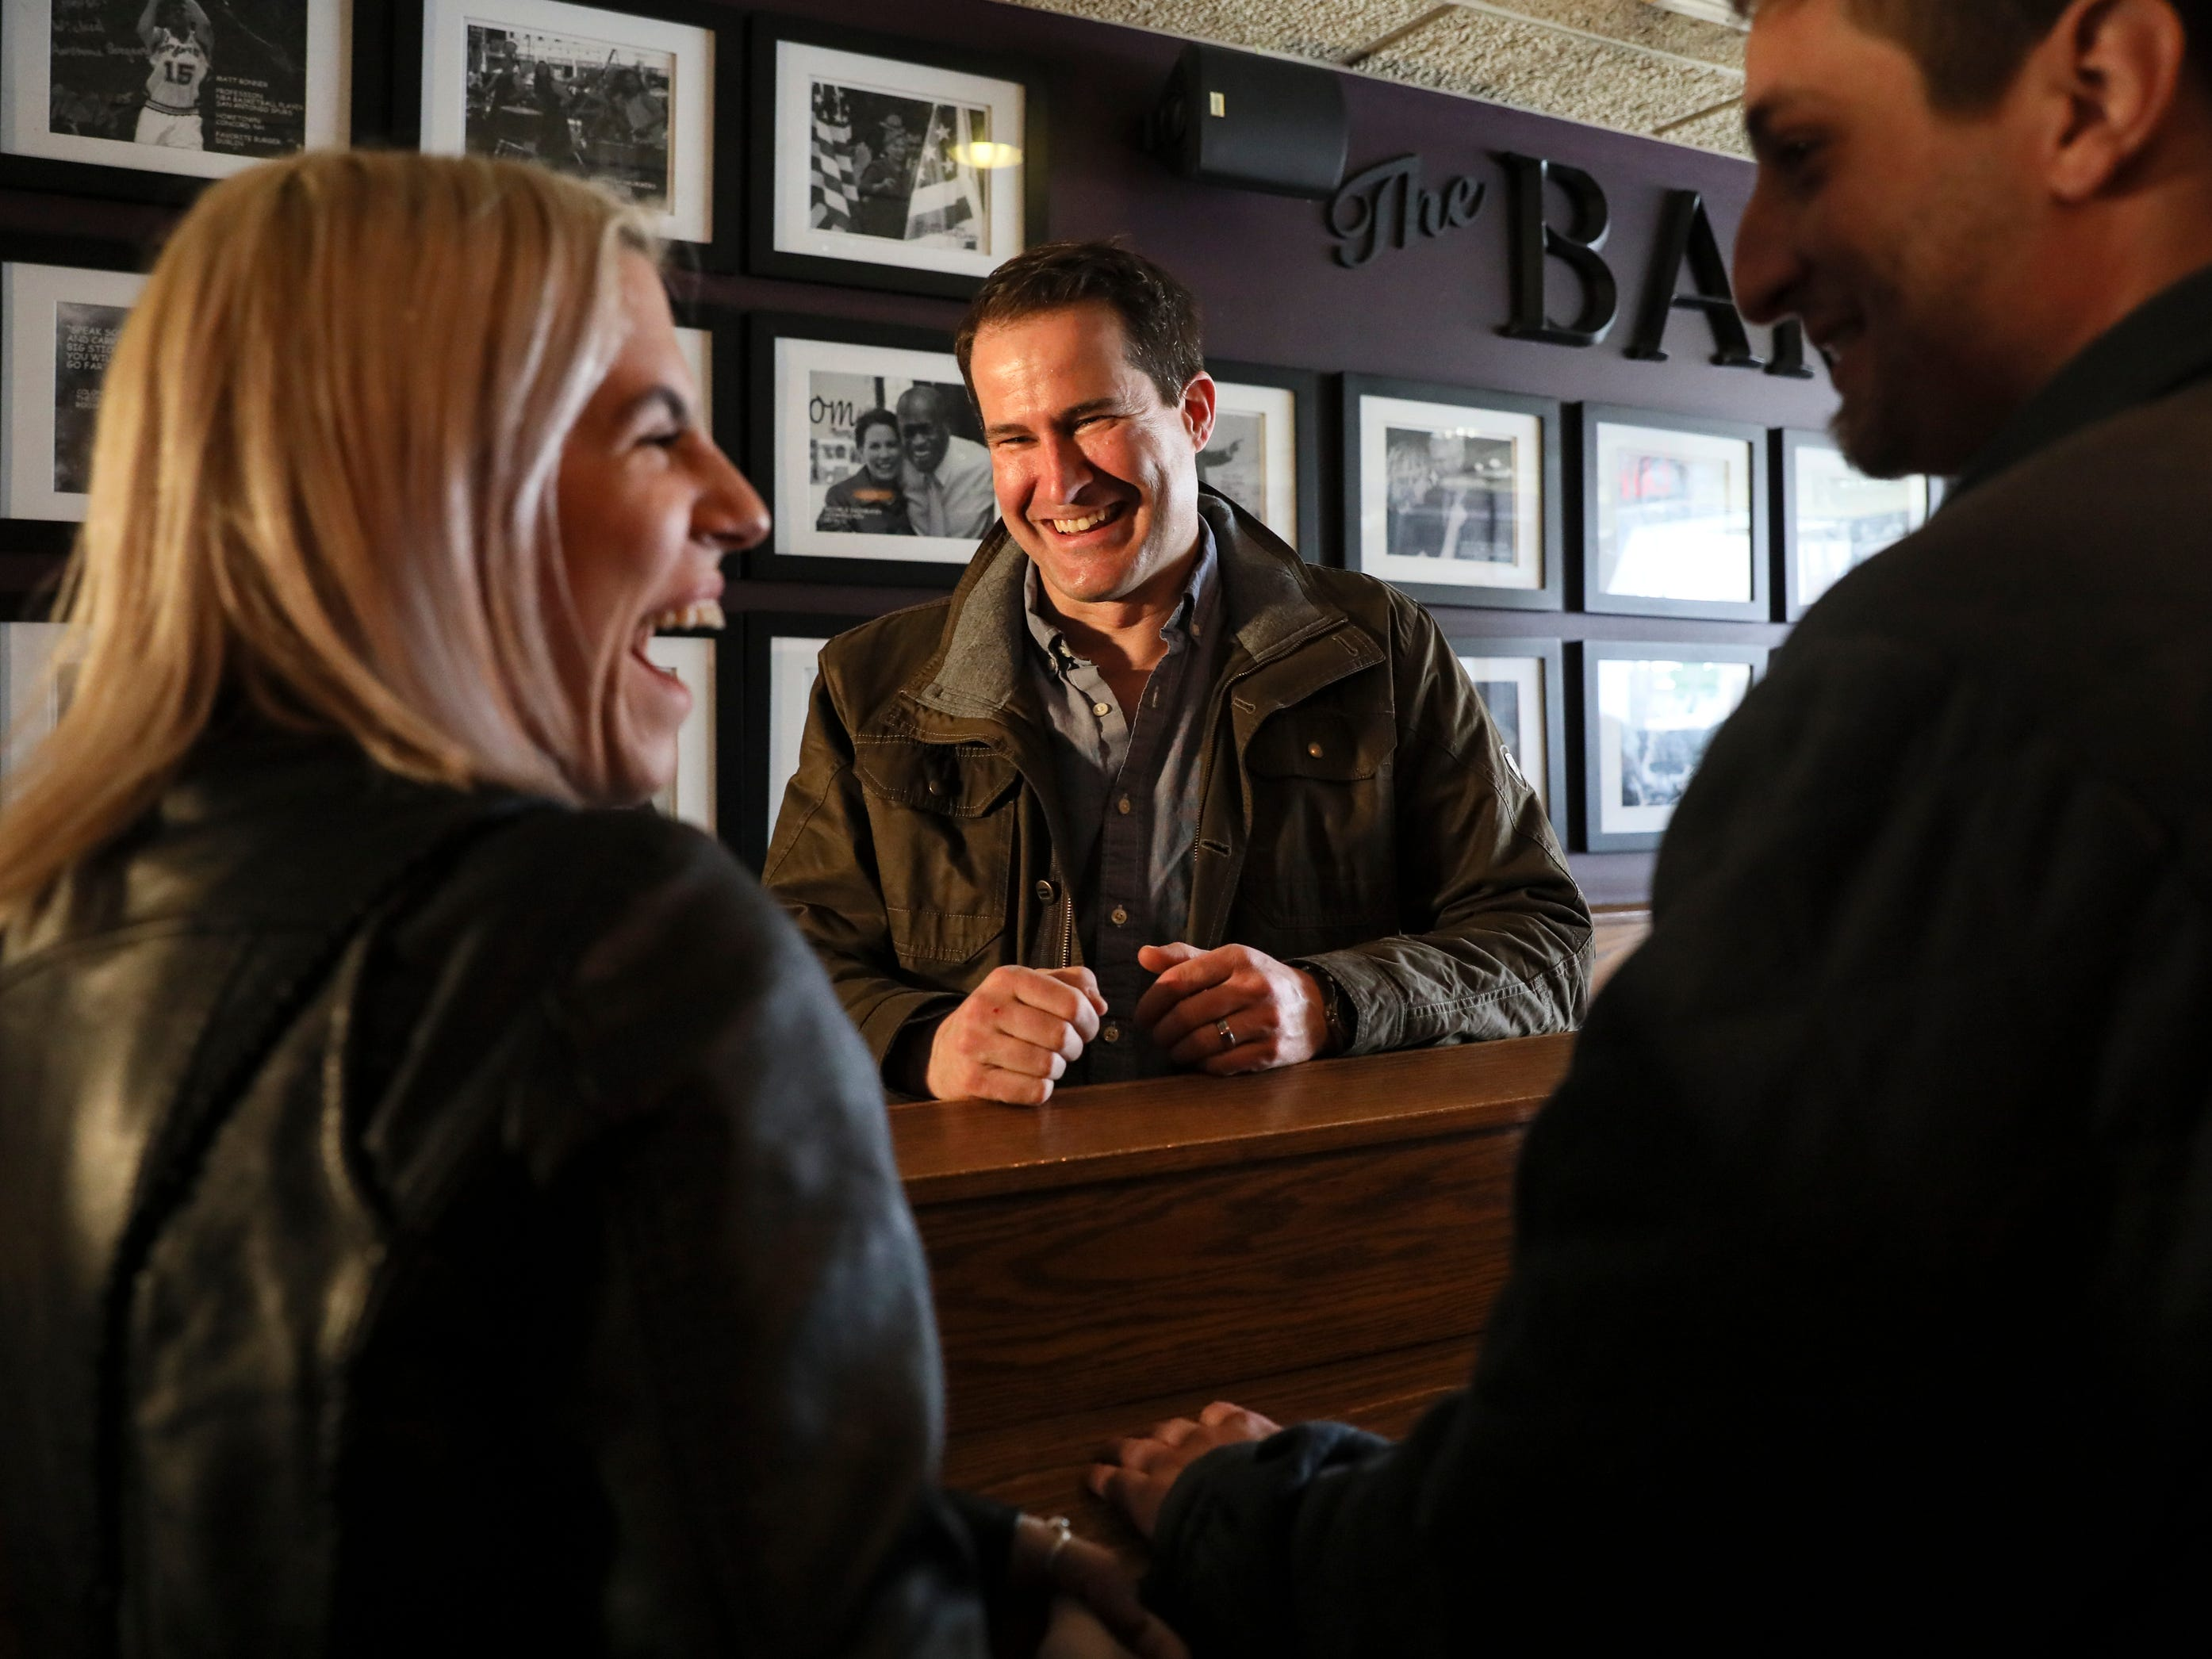 Rep. Seth Moulton, D-MA.., meets with patrons after participating in the Pints and Politics event held at The Barley House in Concord, N.H. Saturday, March 16, 2019. Rep. Moulton announced he is joining the presidential race on April 22, 2019.